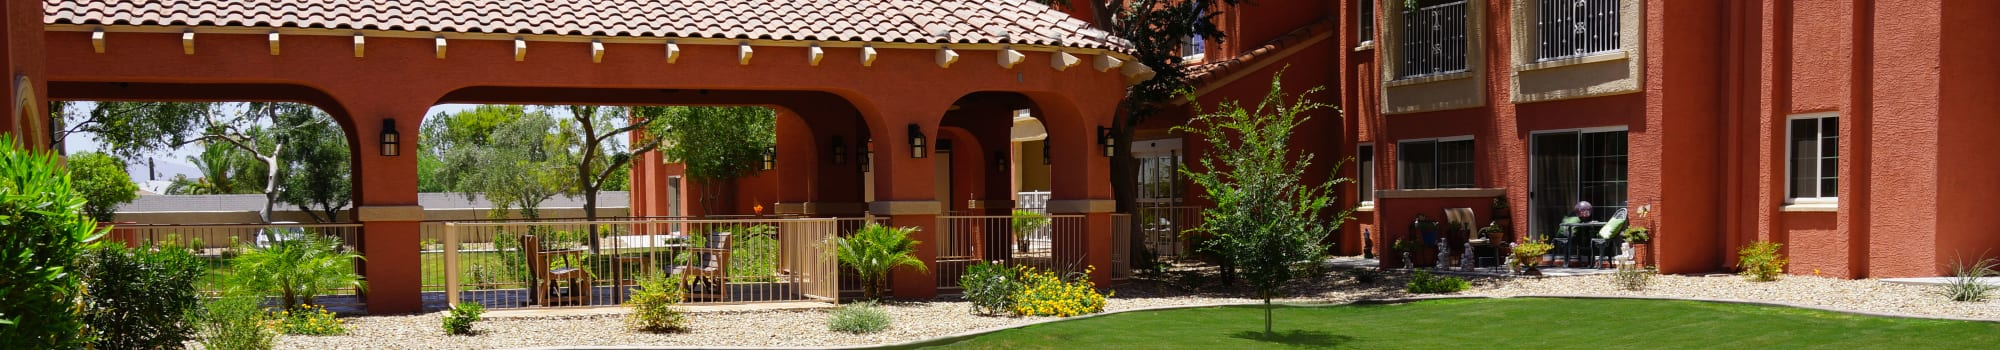 Reviews at Casa Del Rio Senior Living in Peoria, Arizona